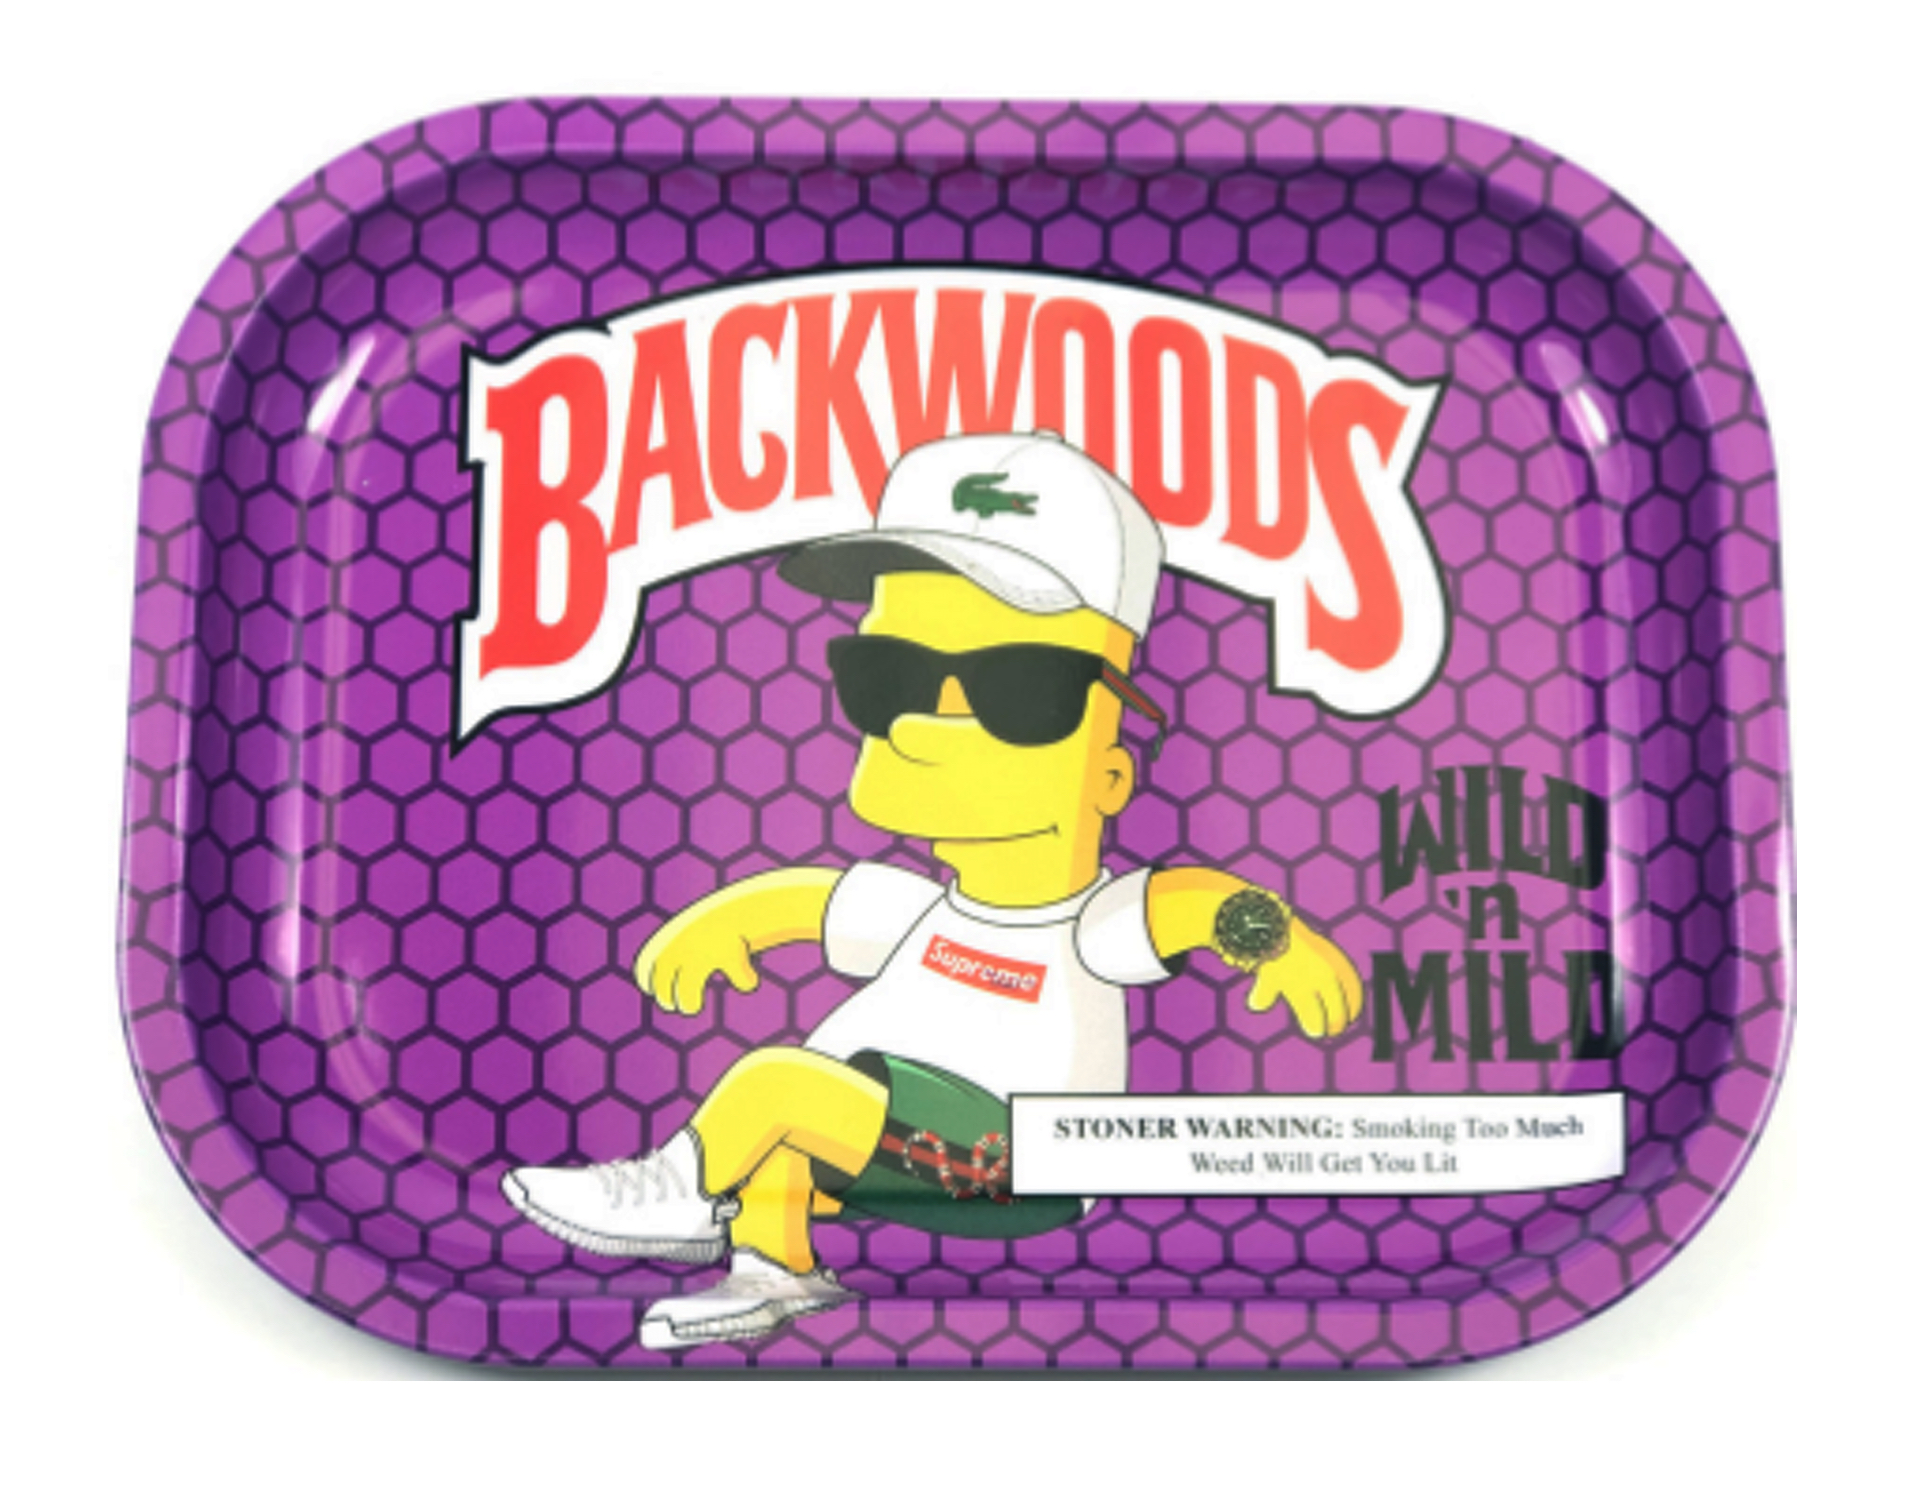 Backwoods Wild N Mild Rolling Tray